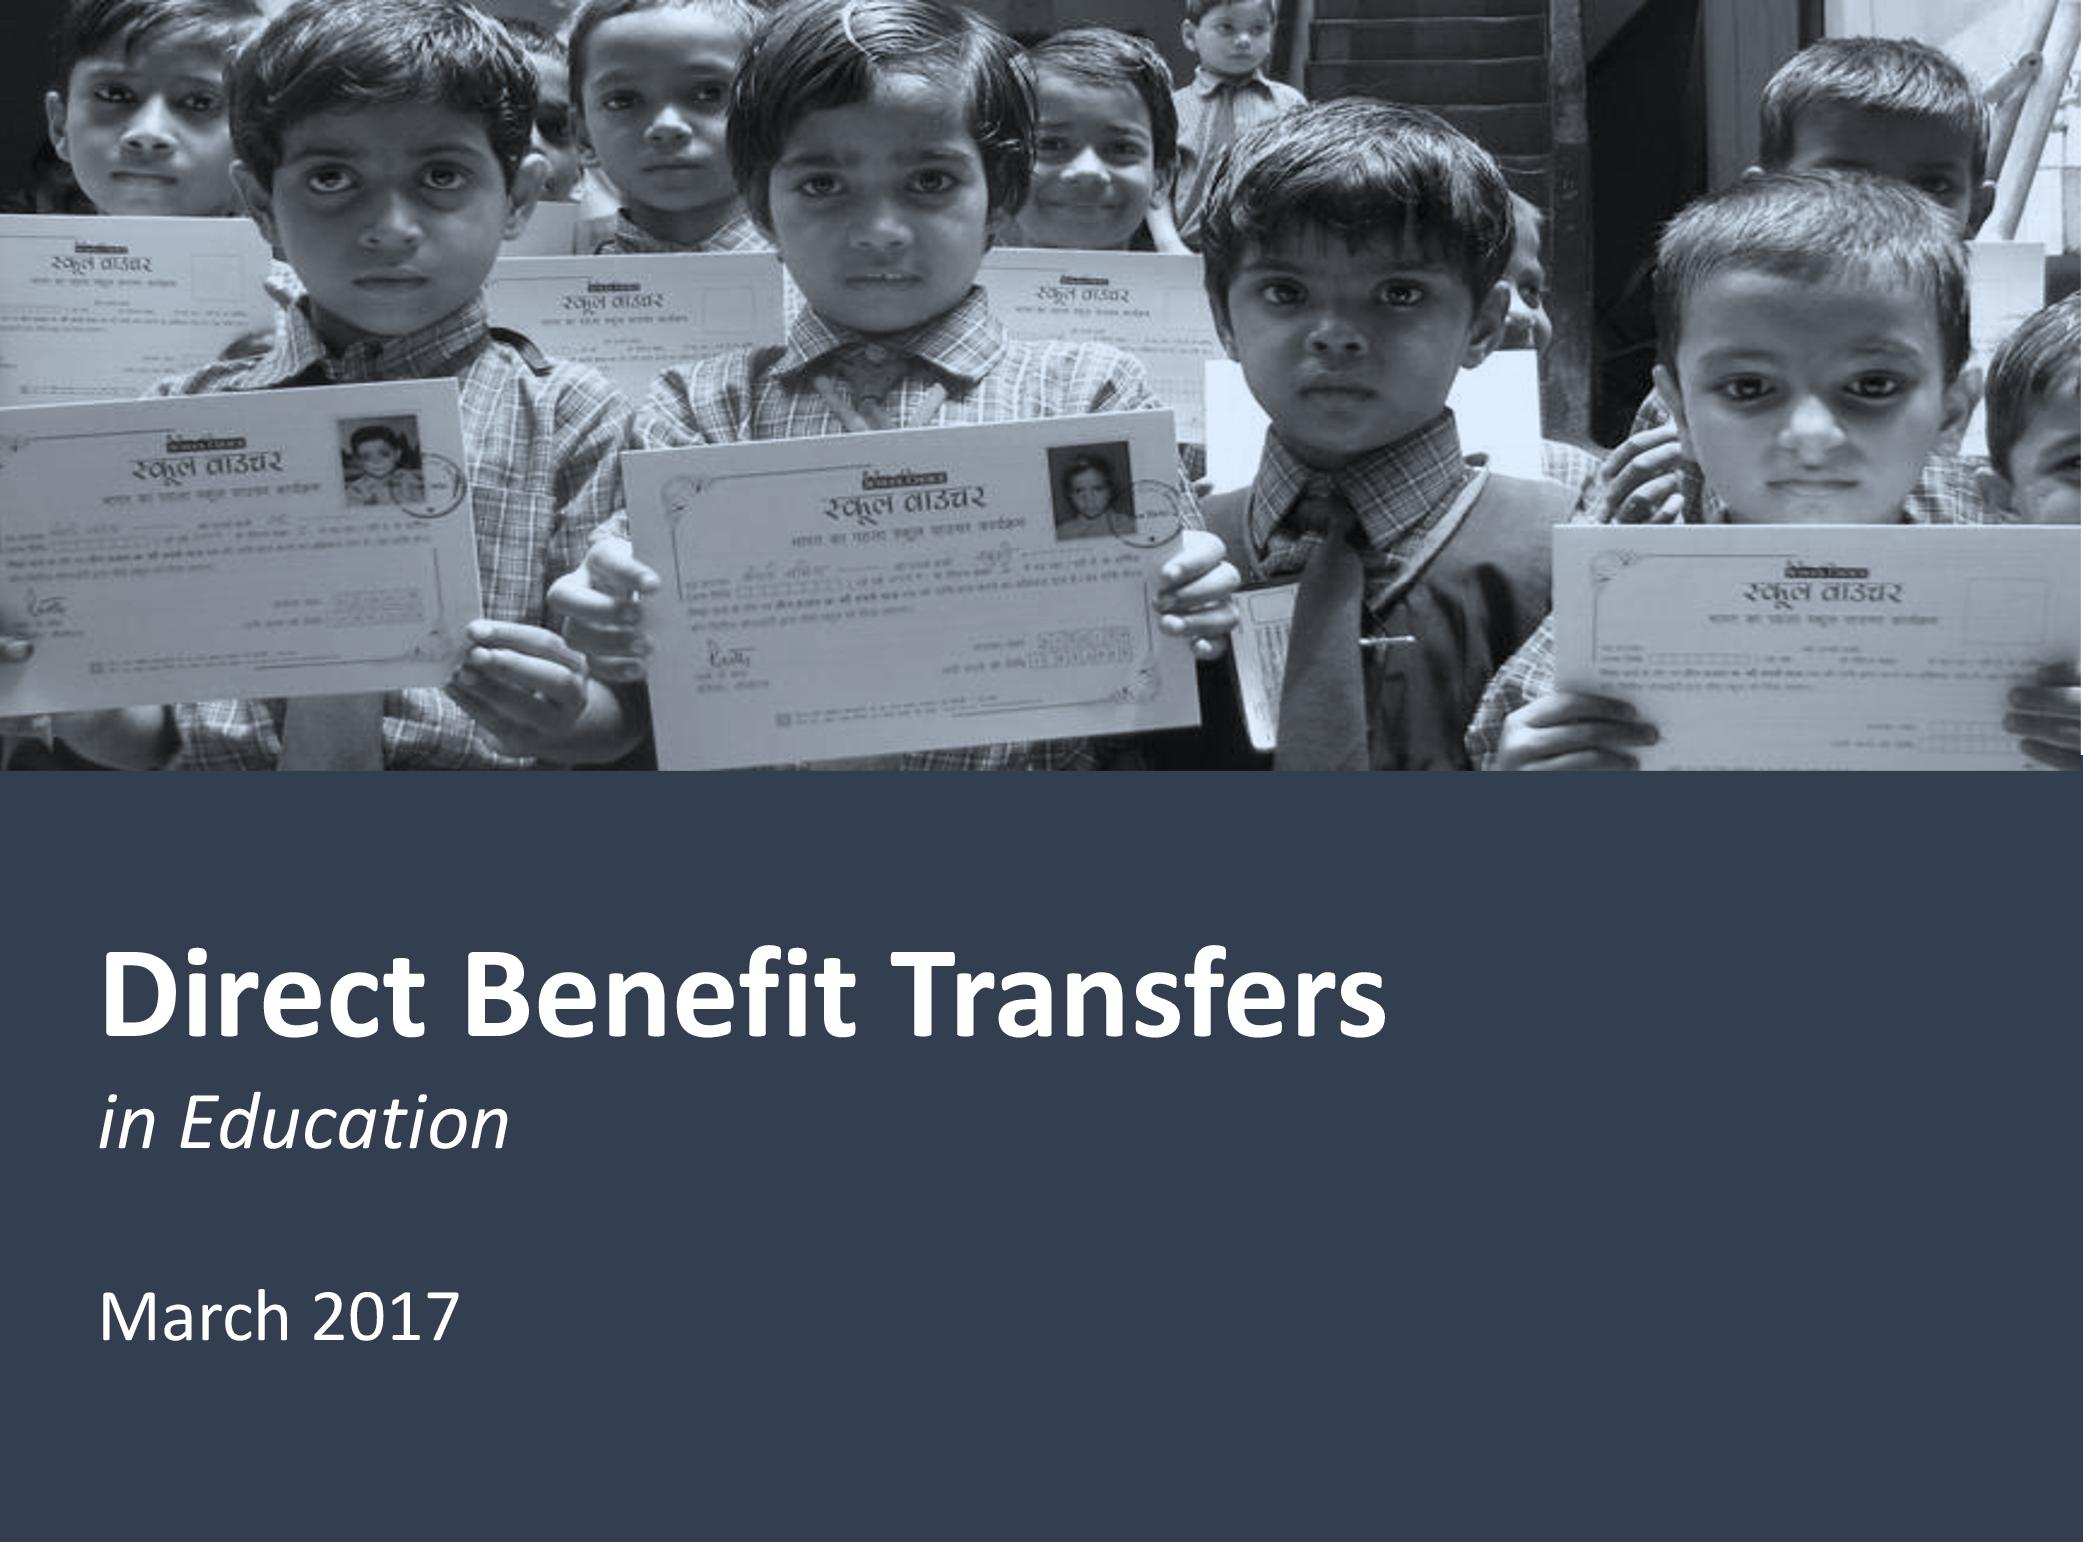 Direct Benefit Transfers in Education